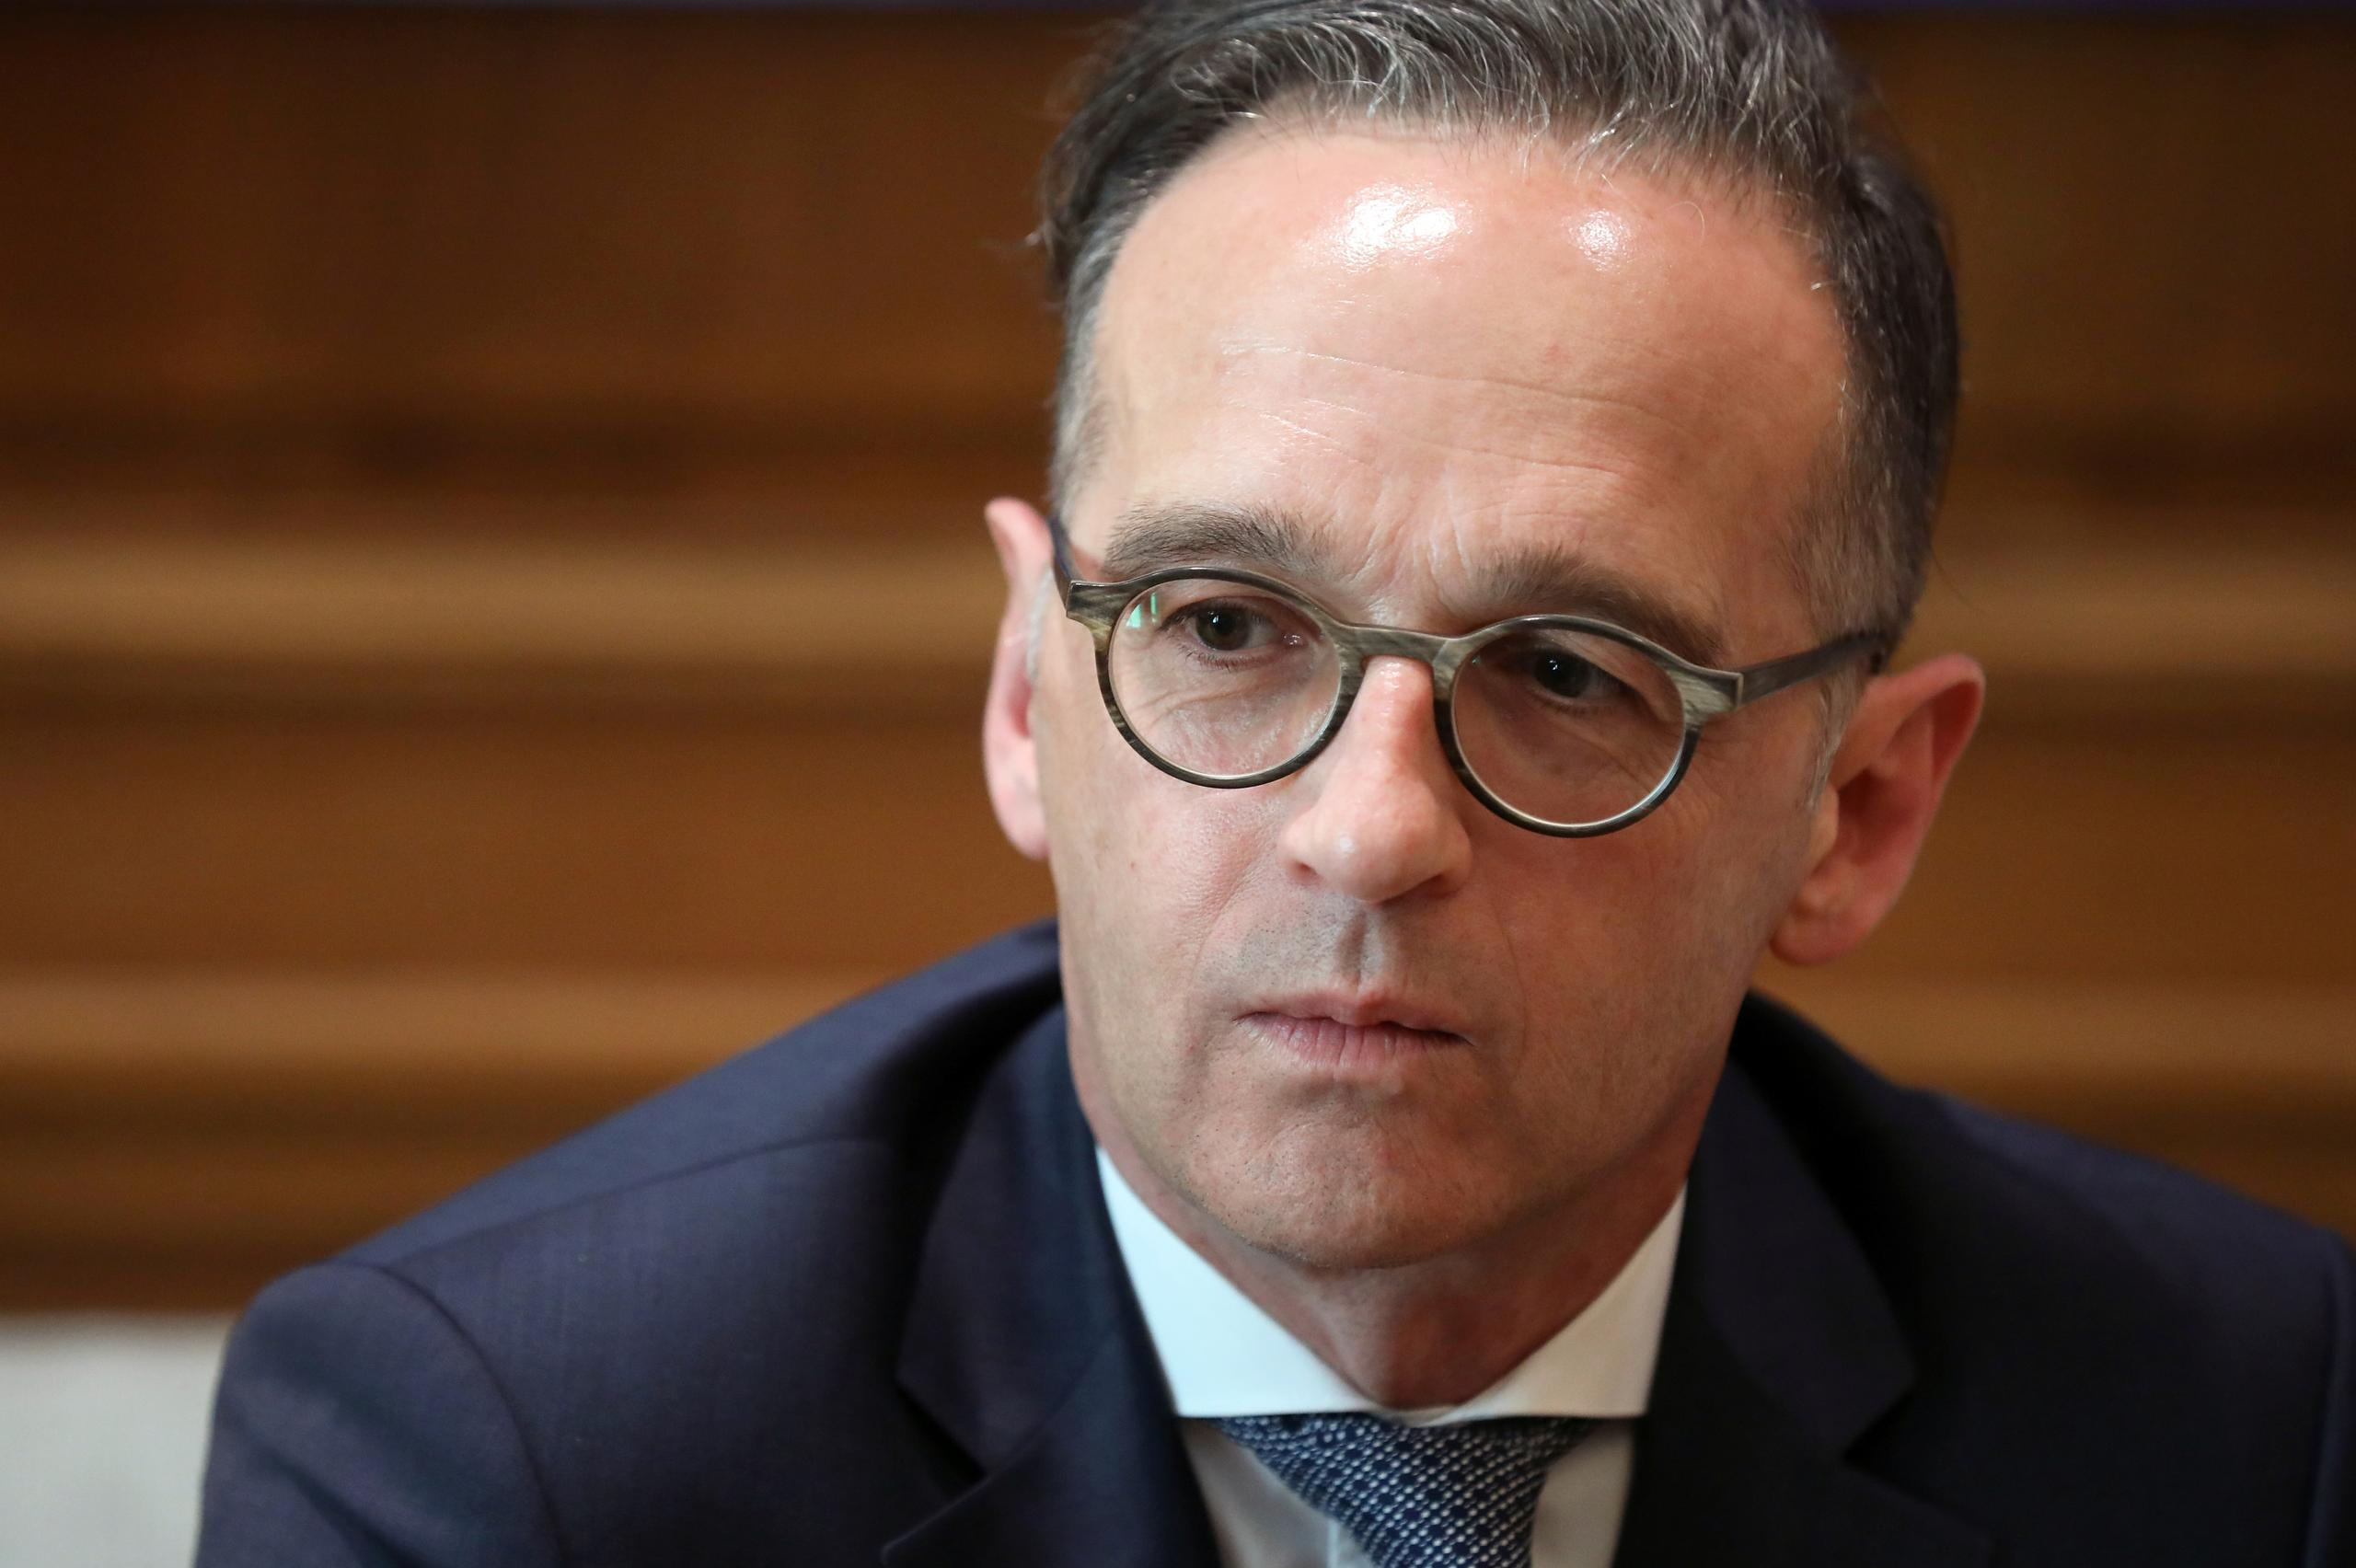 China embassy criticizes Germany's suspension of extradition treaty with Hong Kong